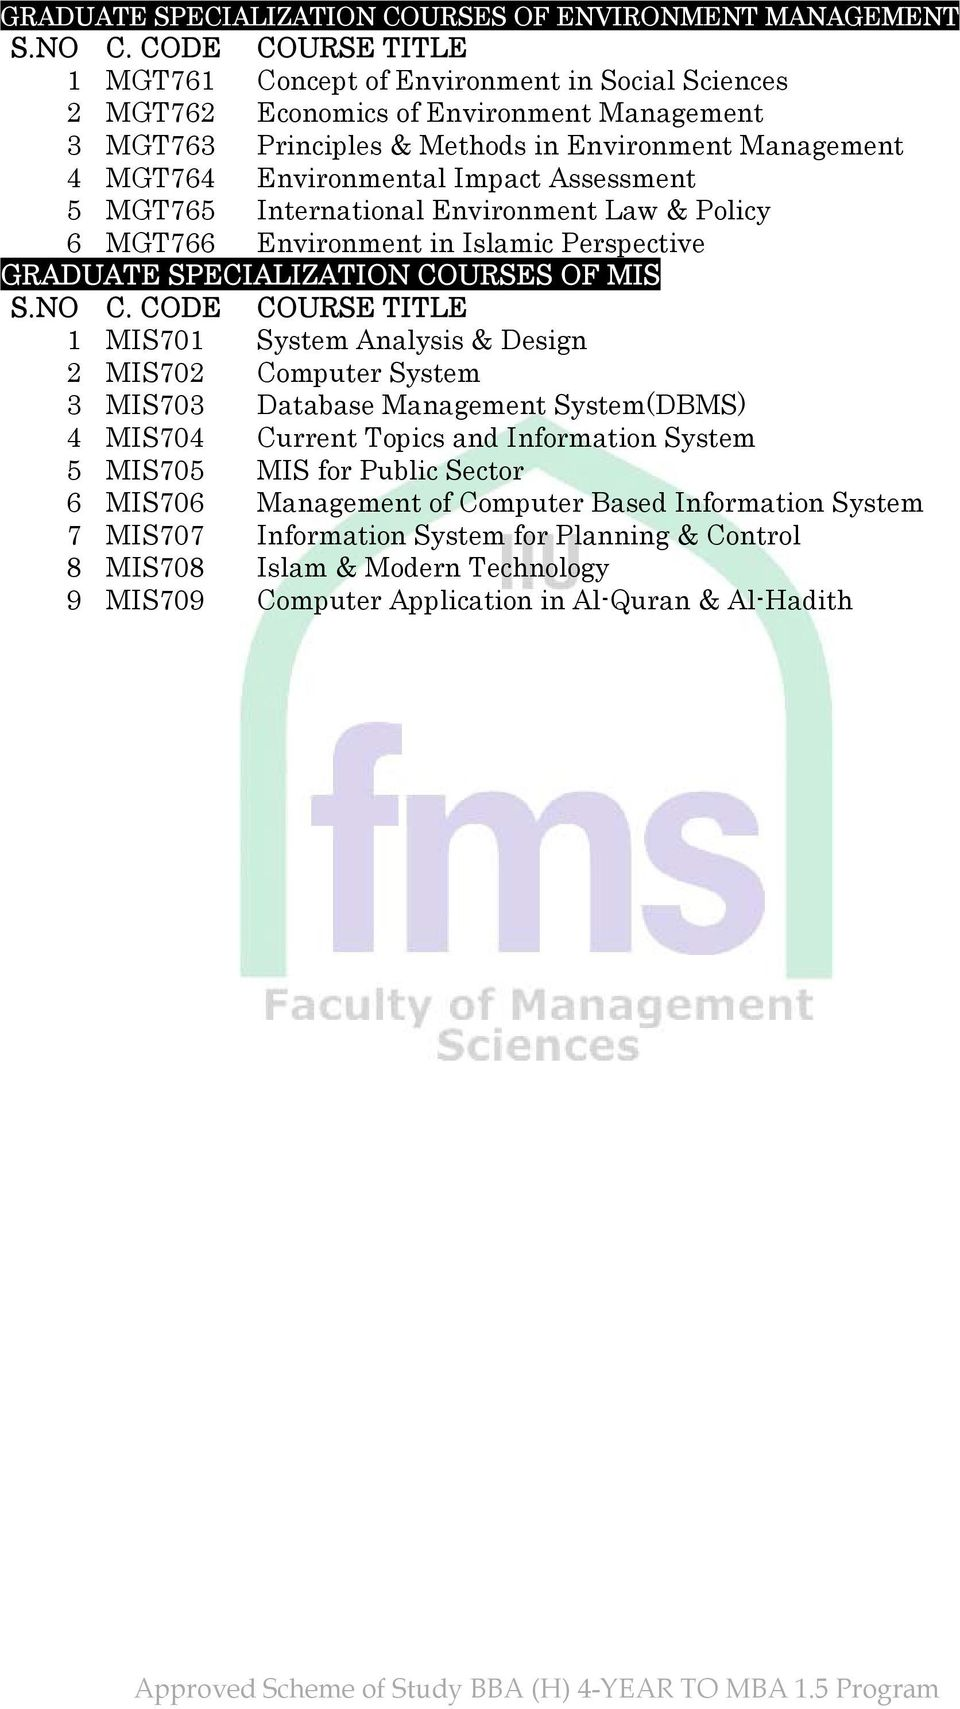 OF MIS 1 MIS701 System Analysis & Design 2 MIS702 Computer System 3 MIS703 Database Management System(DBMS) 4 MIS704 Current Topics and Information System 5 MIS705 MIS for Public Sector 6